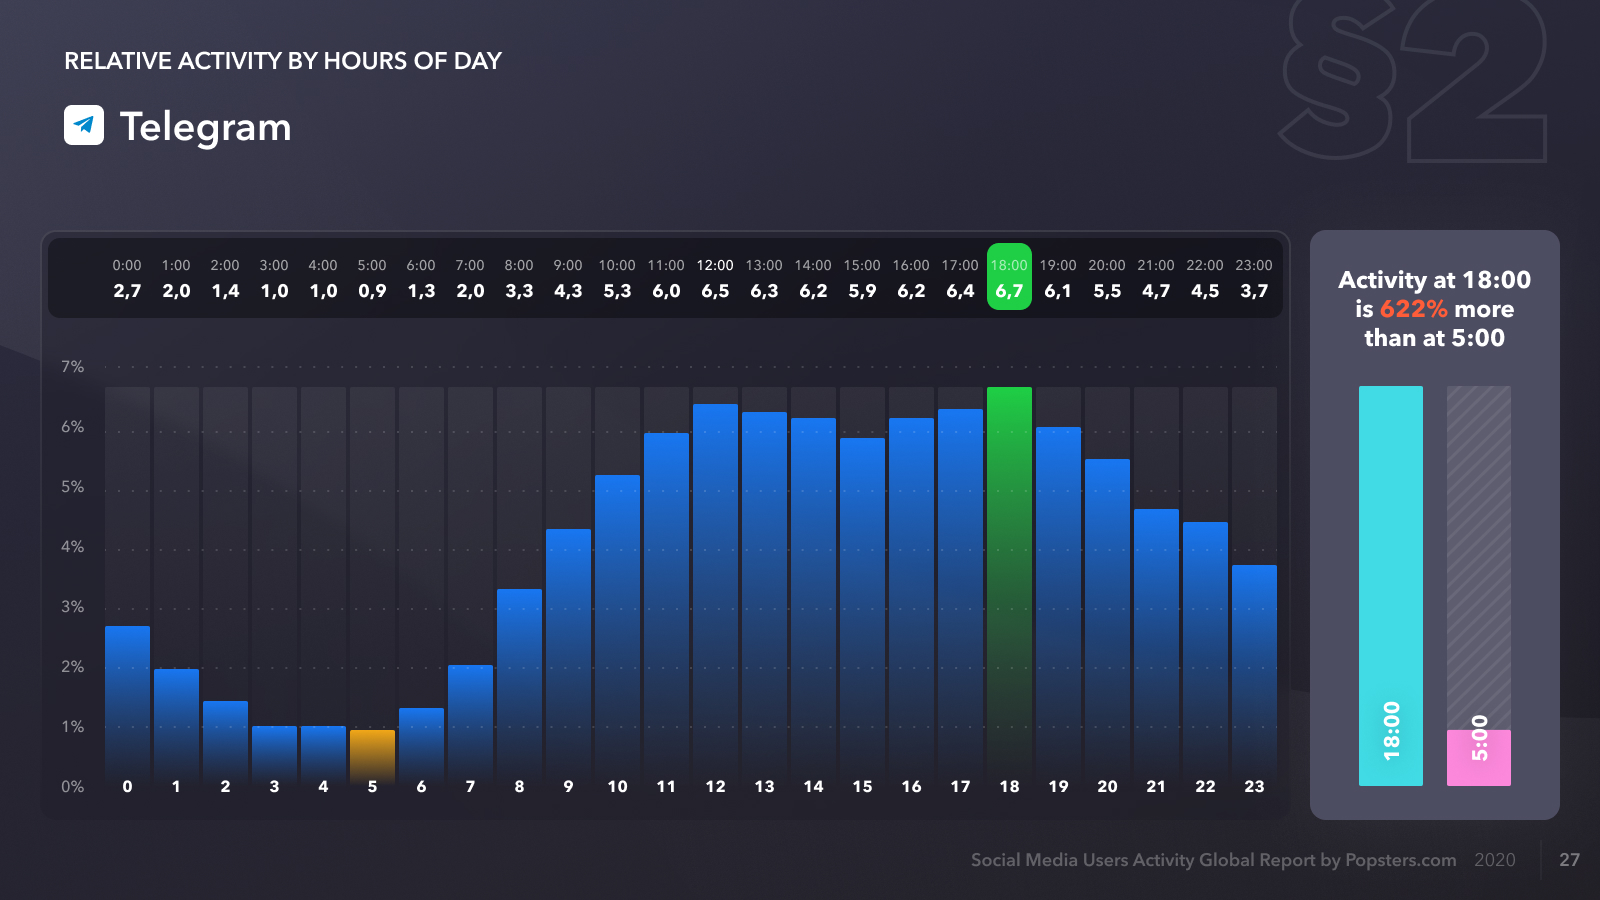 Telegram relative audience activity by hour of the day for 2020